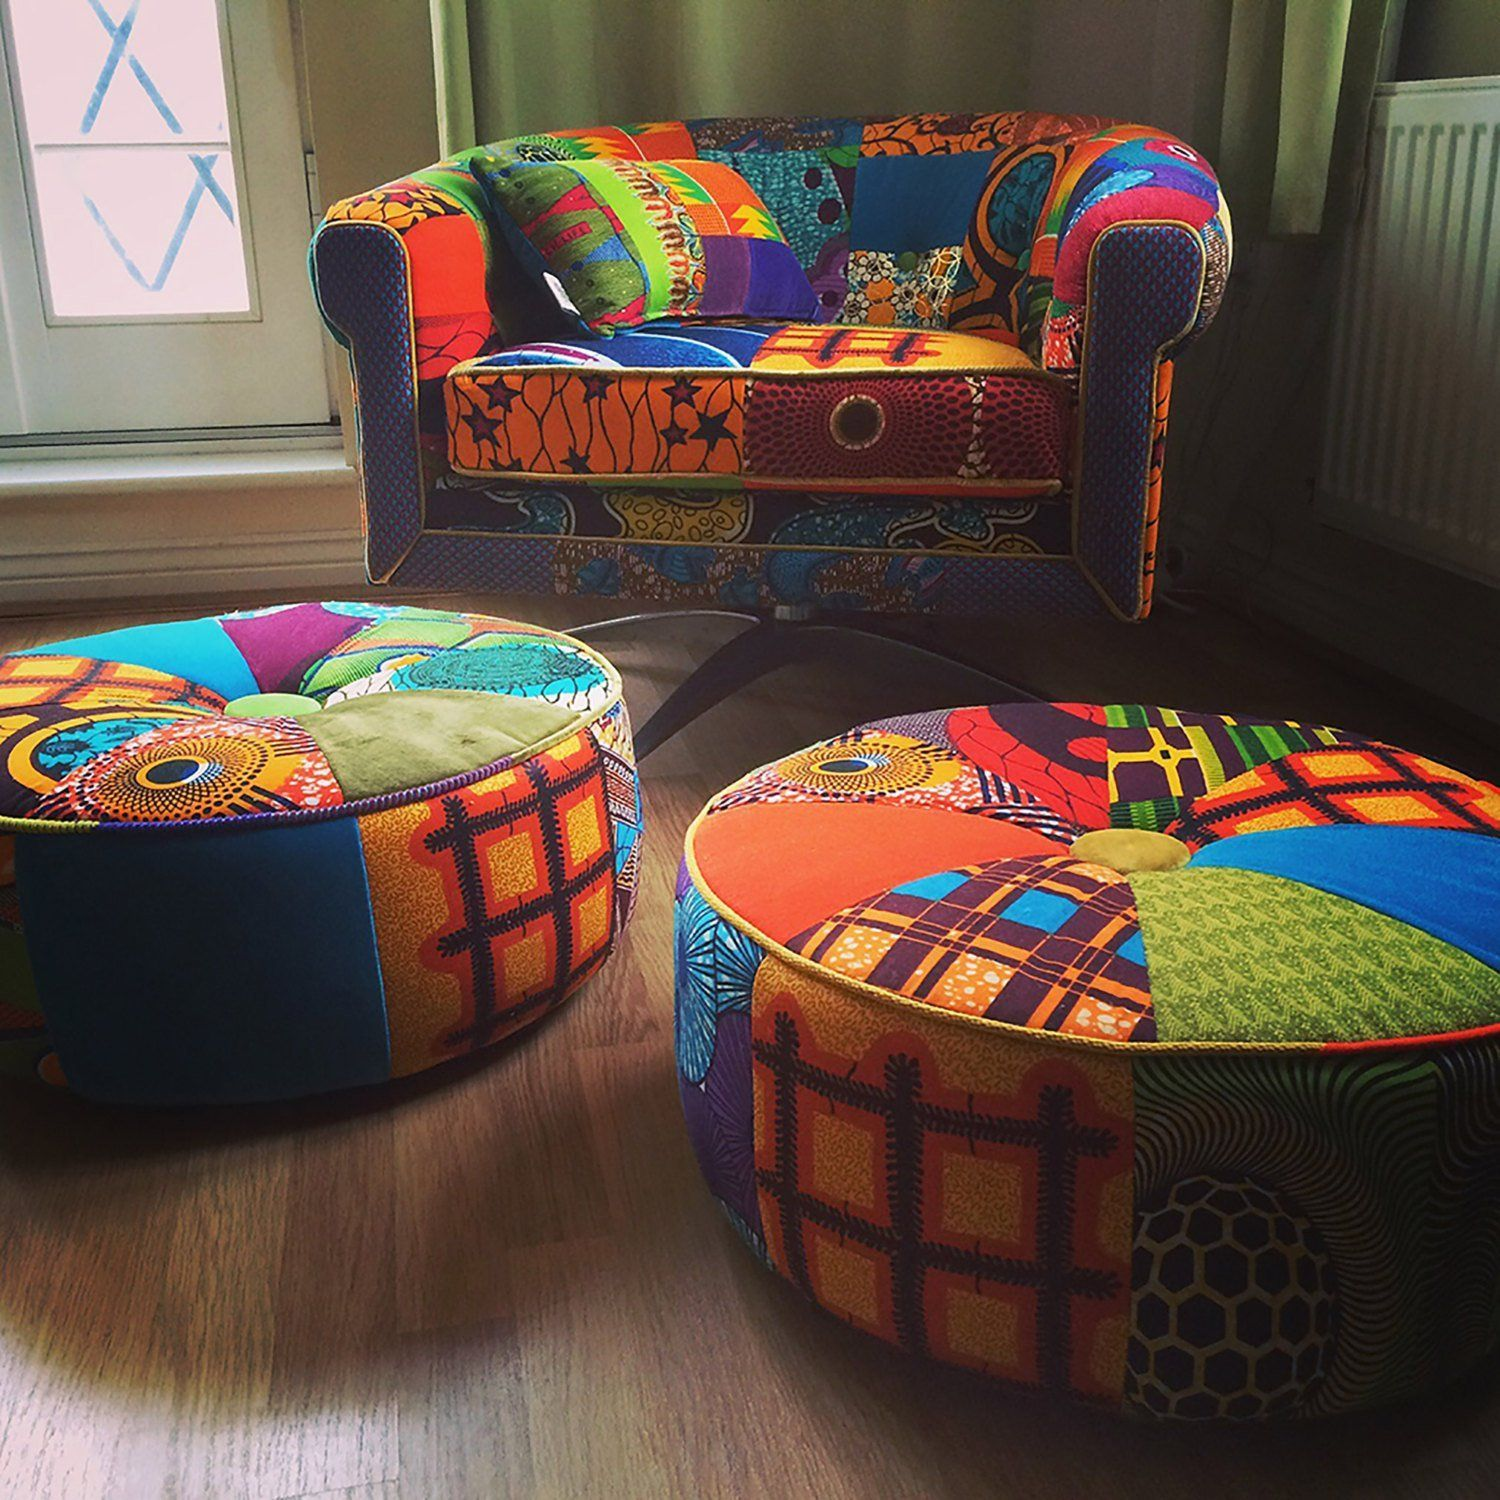 Afrotechnicolour Waxblockprint Mid 20th century Modern chair Upholstered by Ray Clarke -  Afrotechn